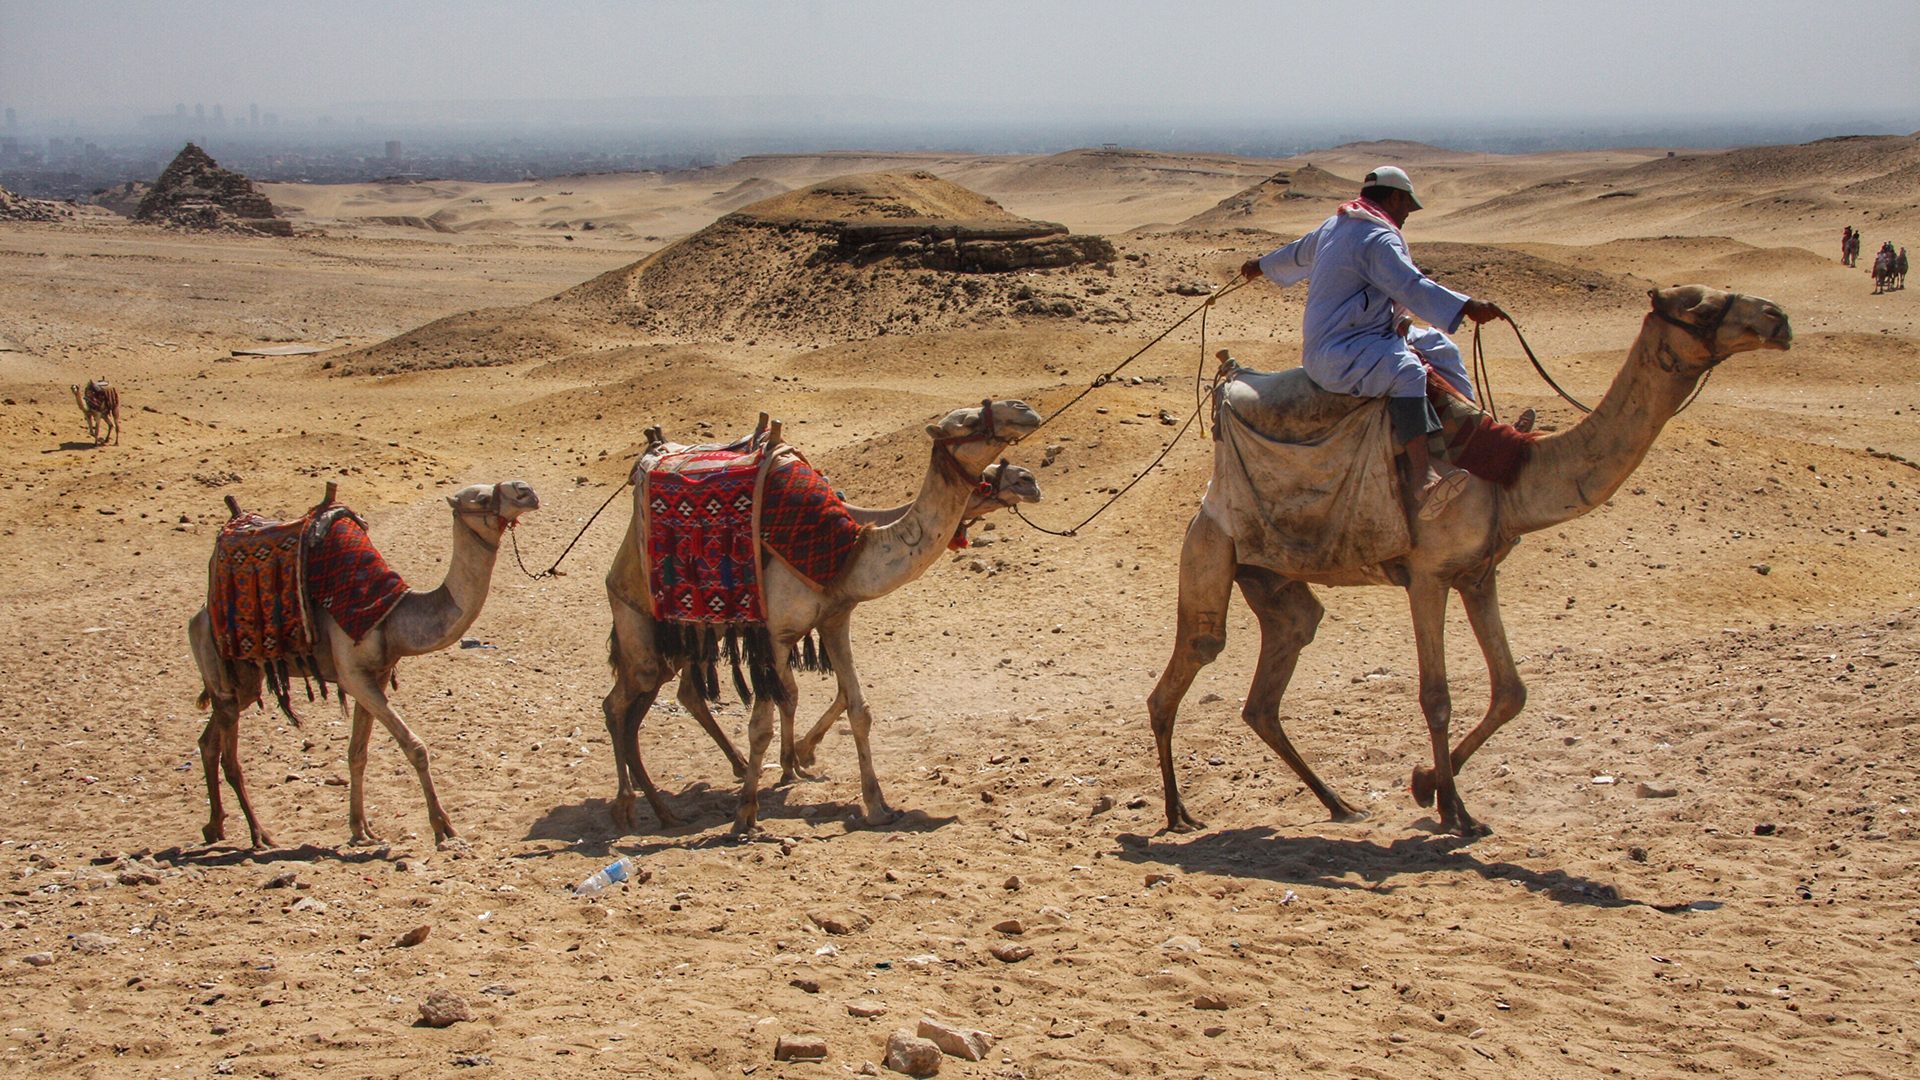 Tourism: dry season for Africa due to Covid-19